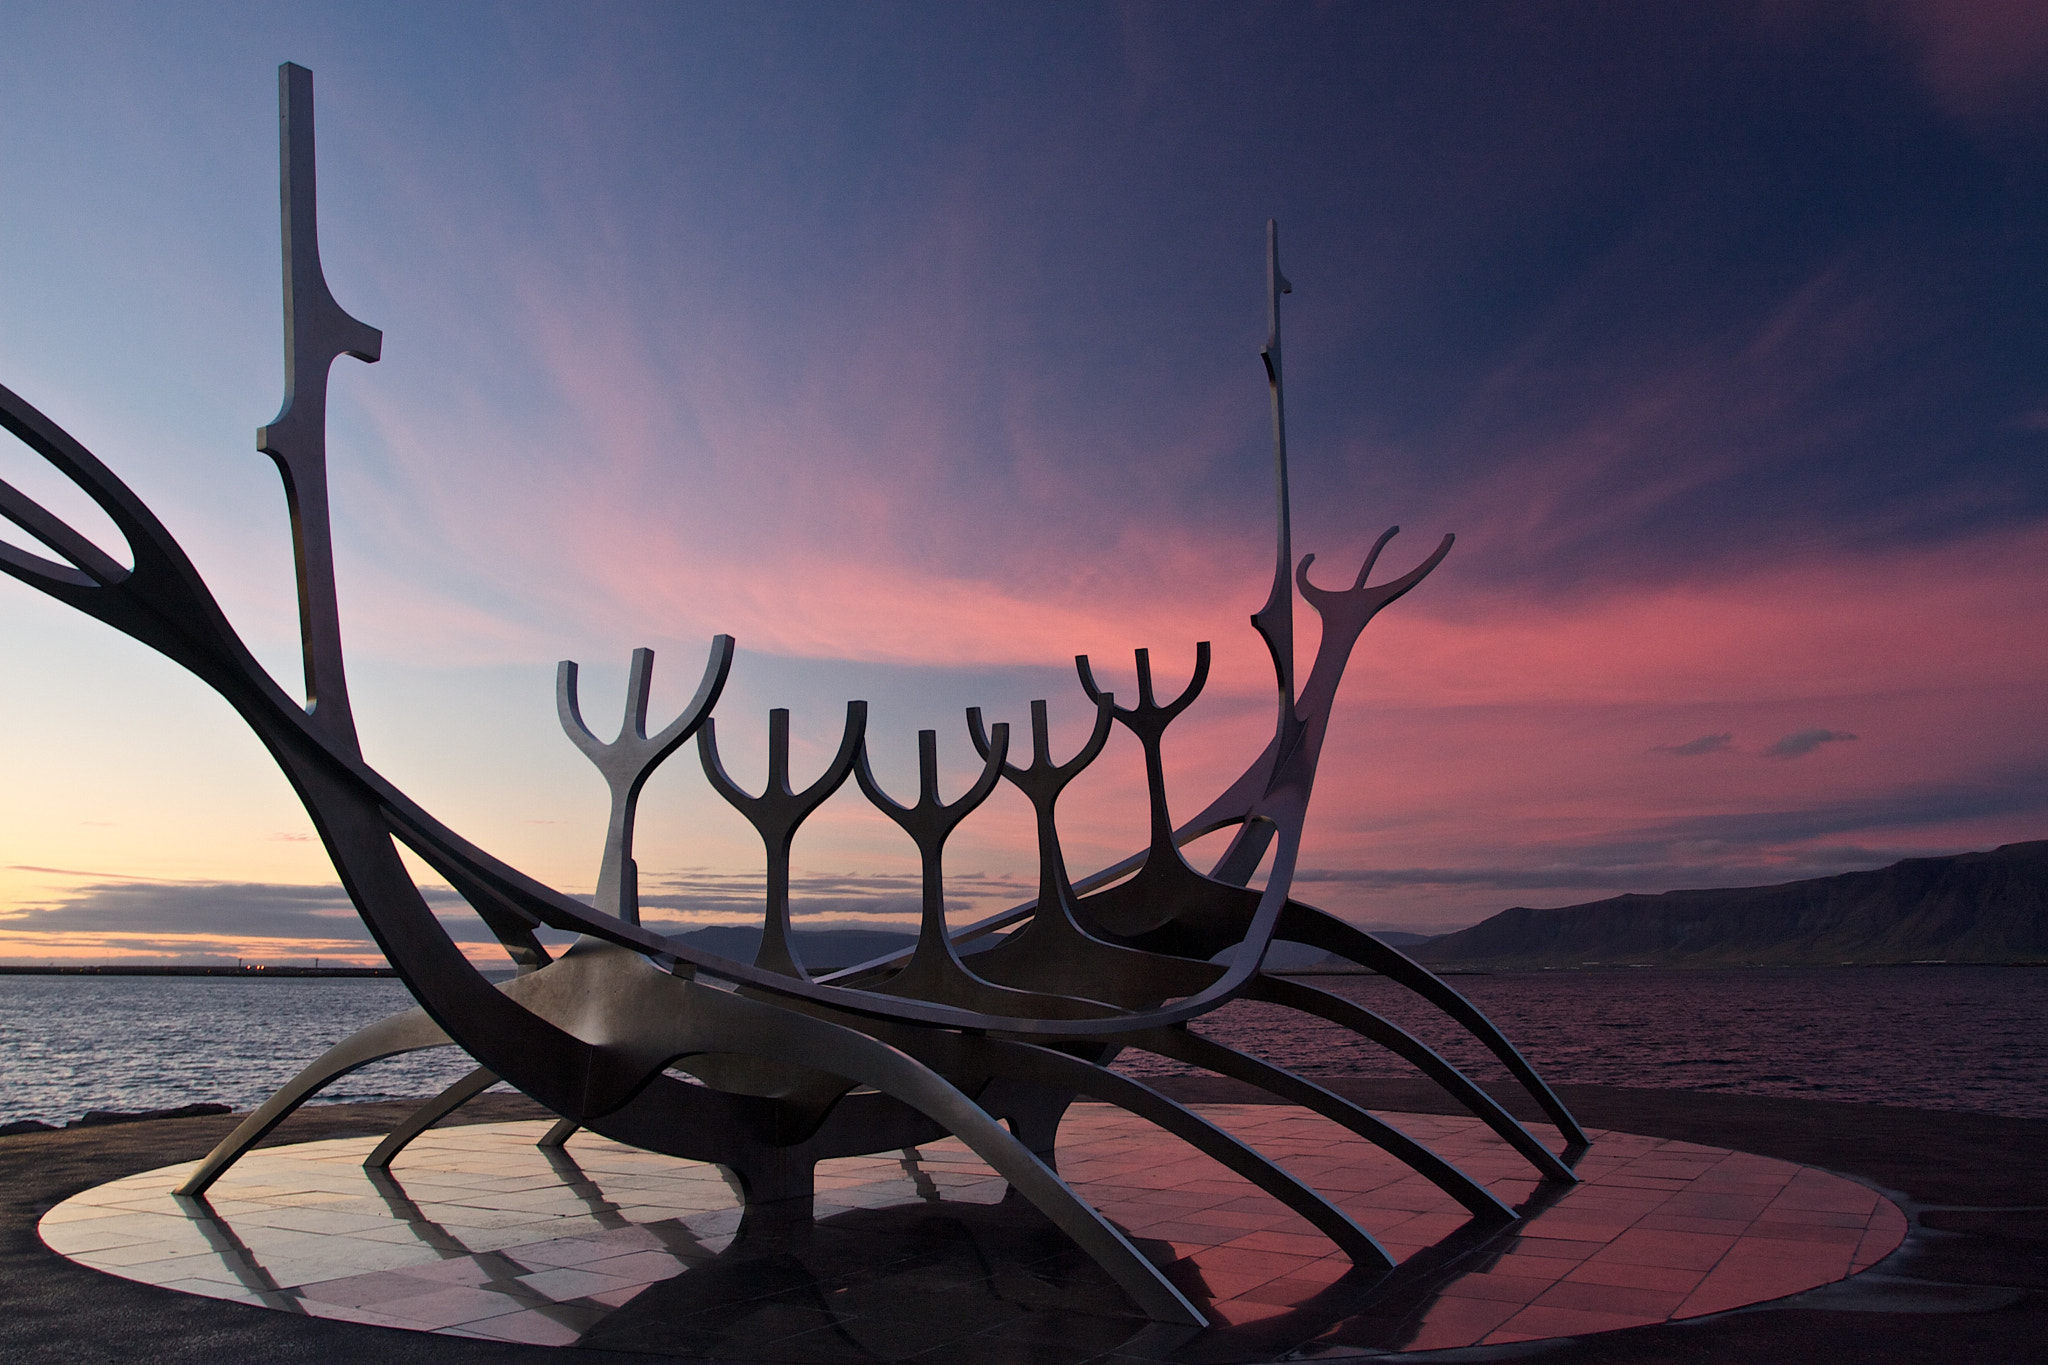 Photograph Skeleton of Vikings past by Jarrod Hayes on 500px